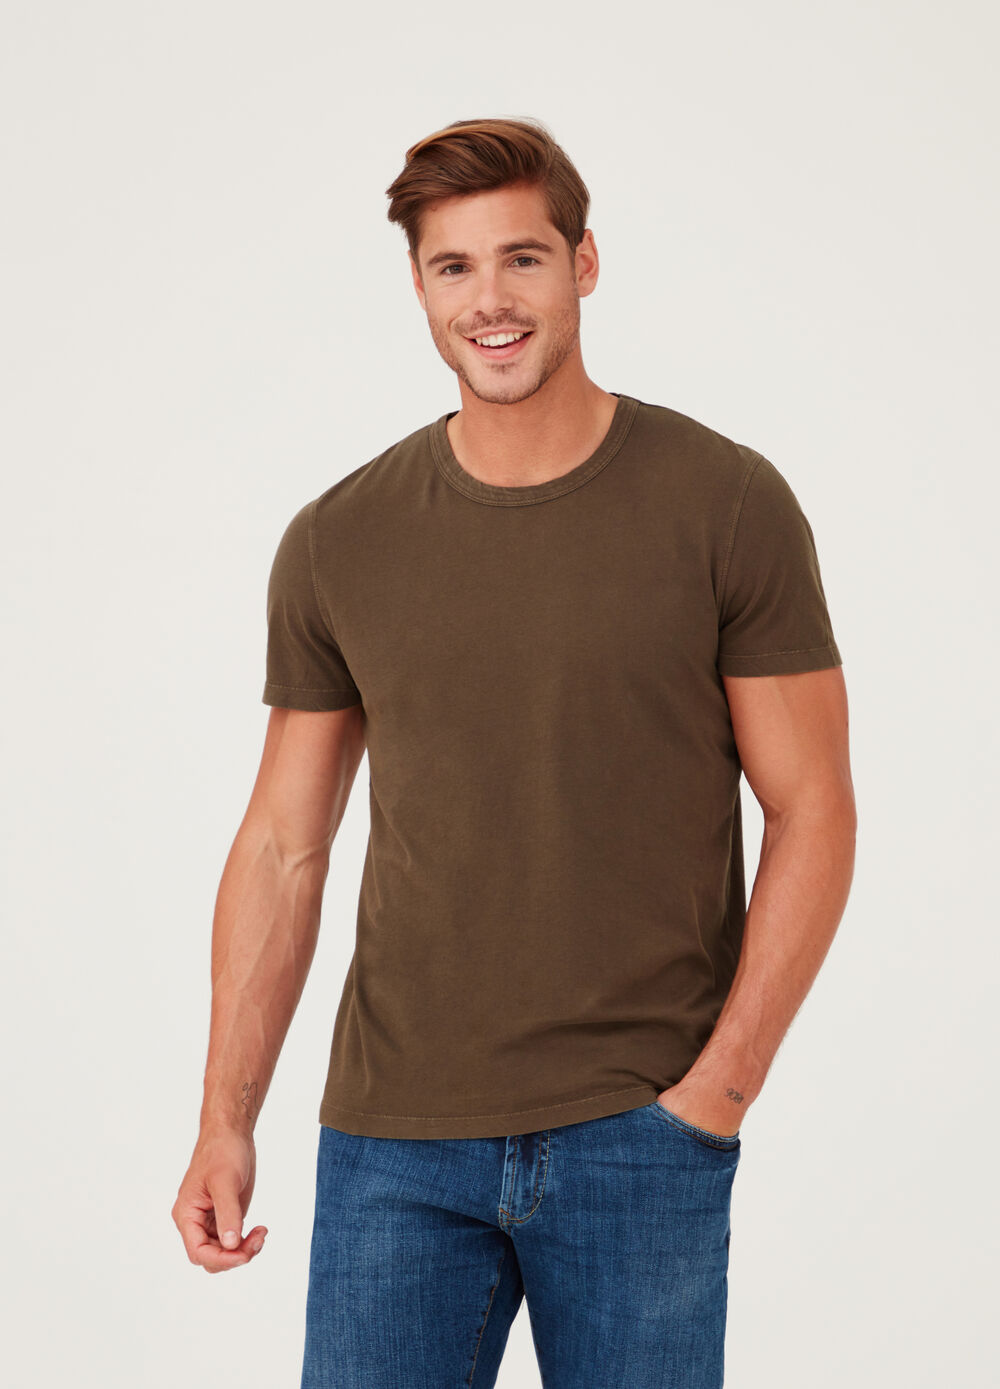 Biocotton premium T-shirt with round neck